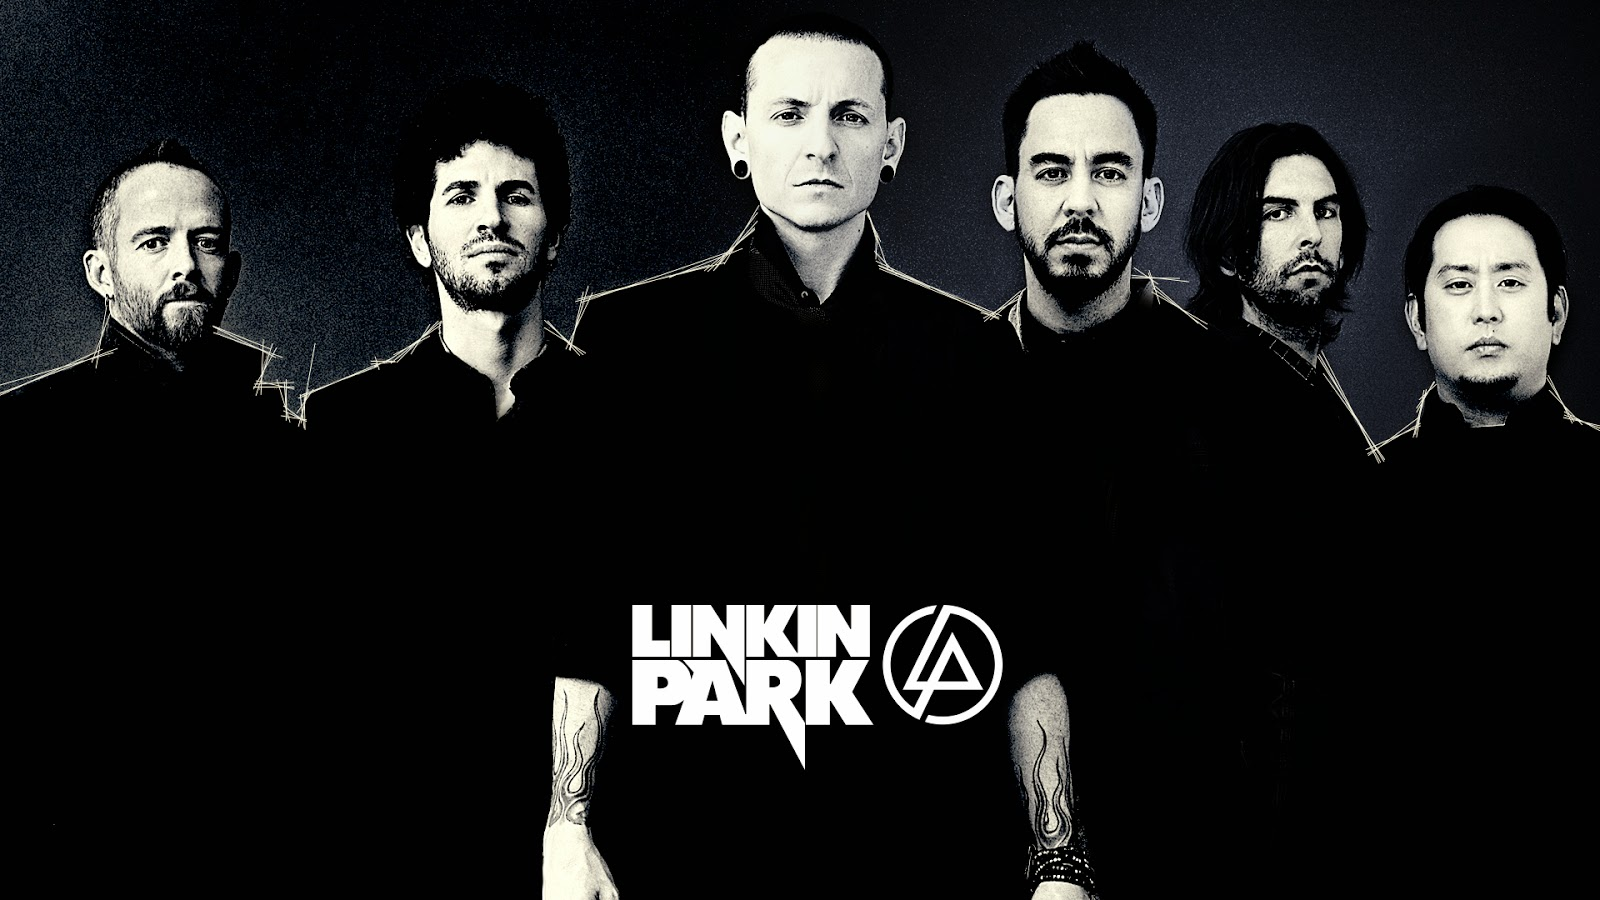 Linkin Park 2015 Summerfest and Tour